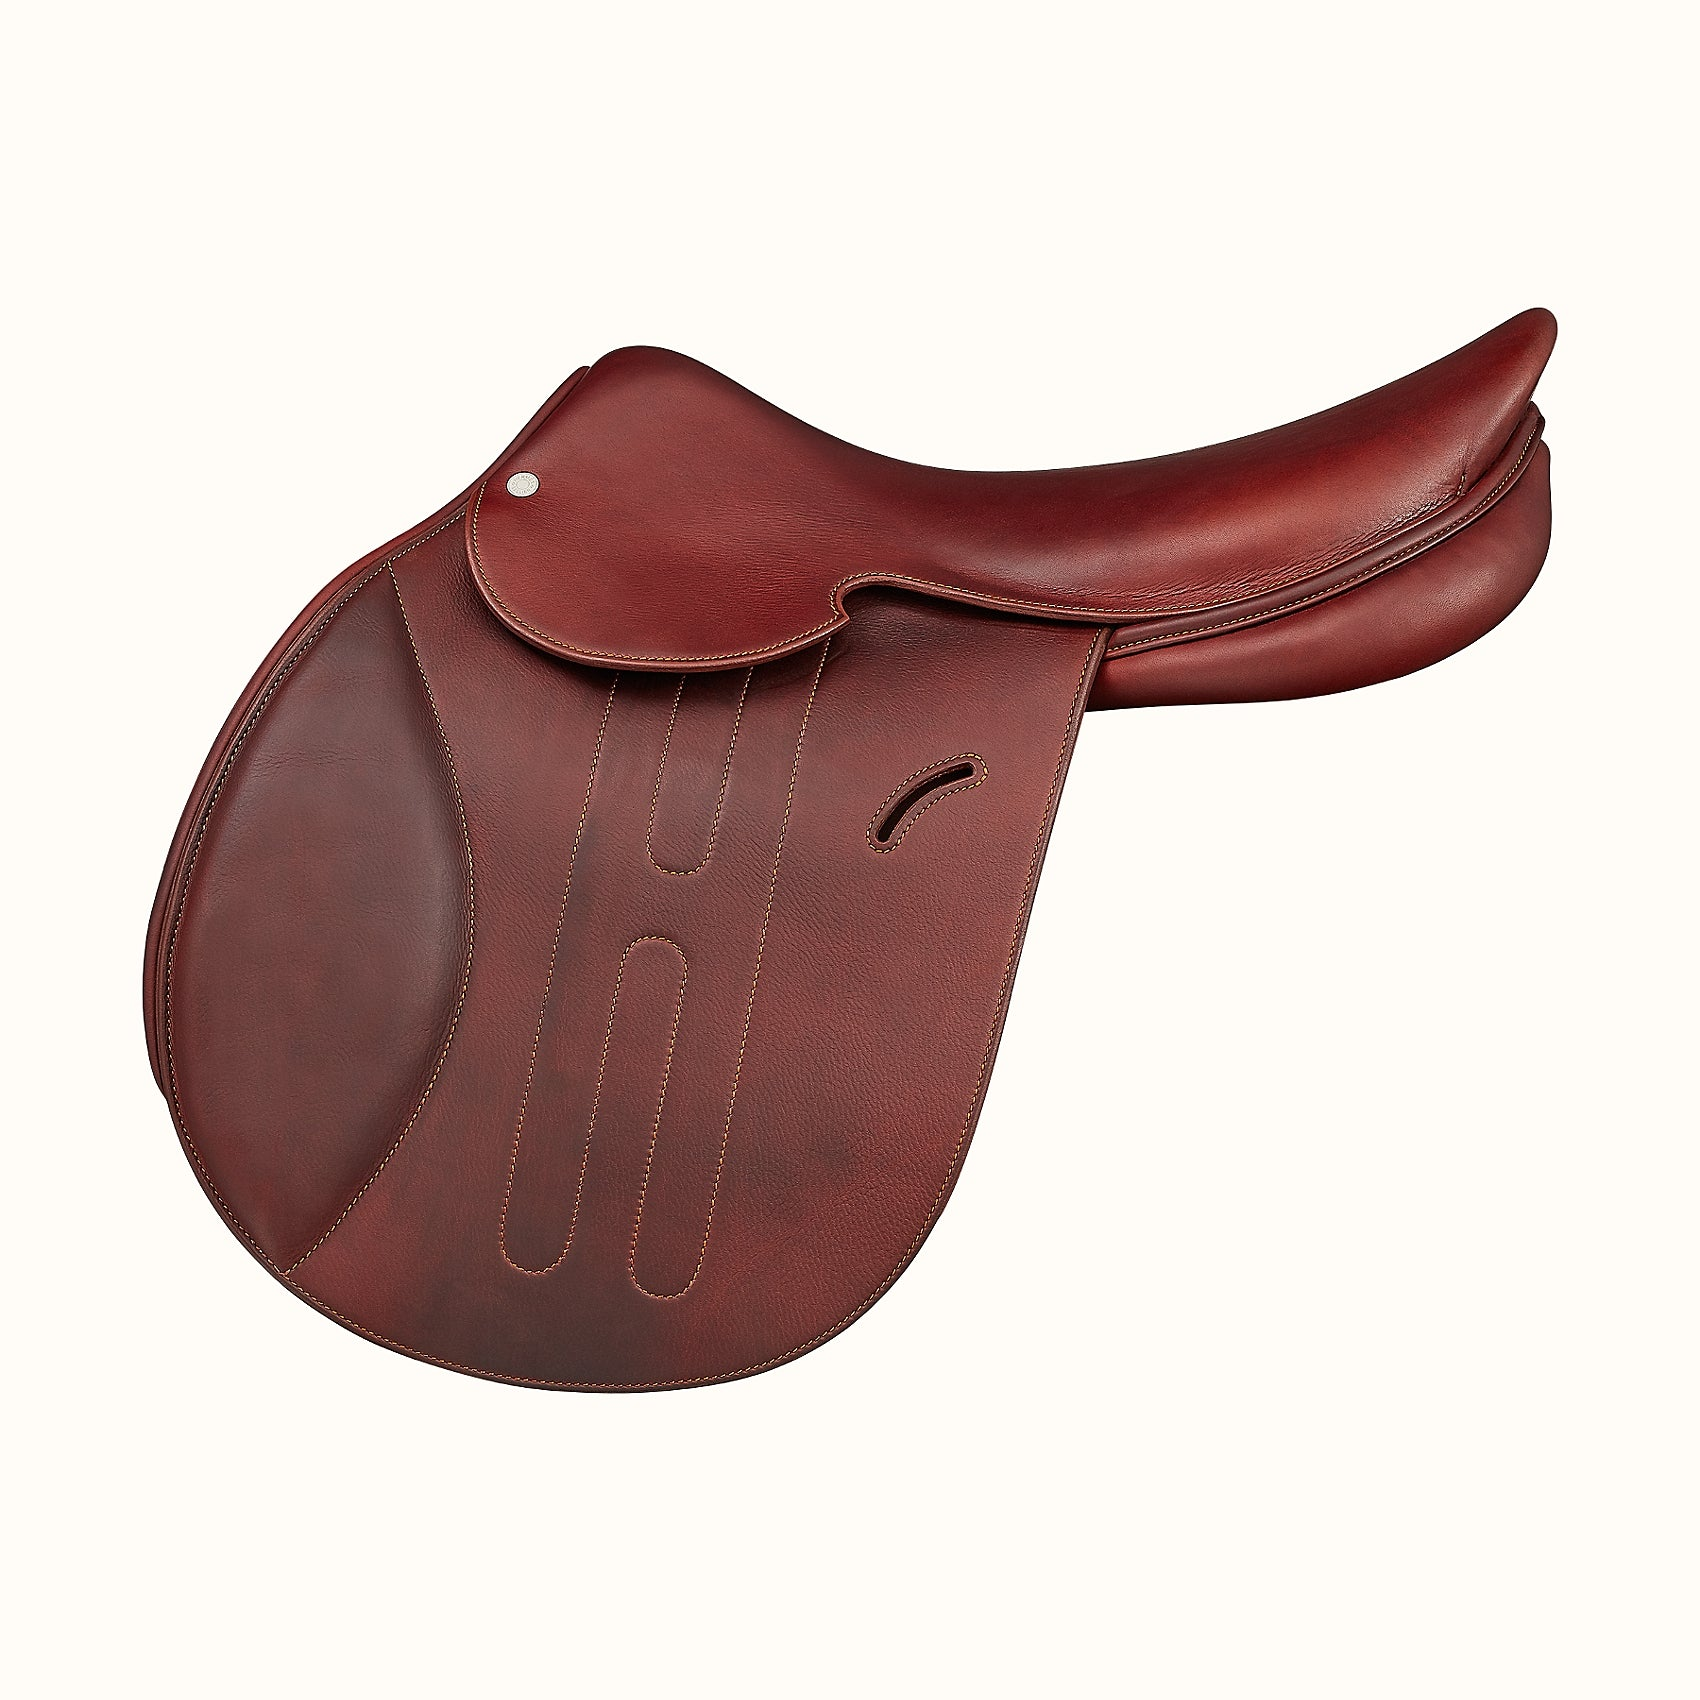 Hermès saddle in How Hermès became the Masters of Leather for A Collected Man London